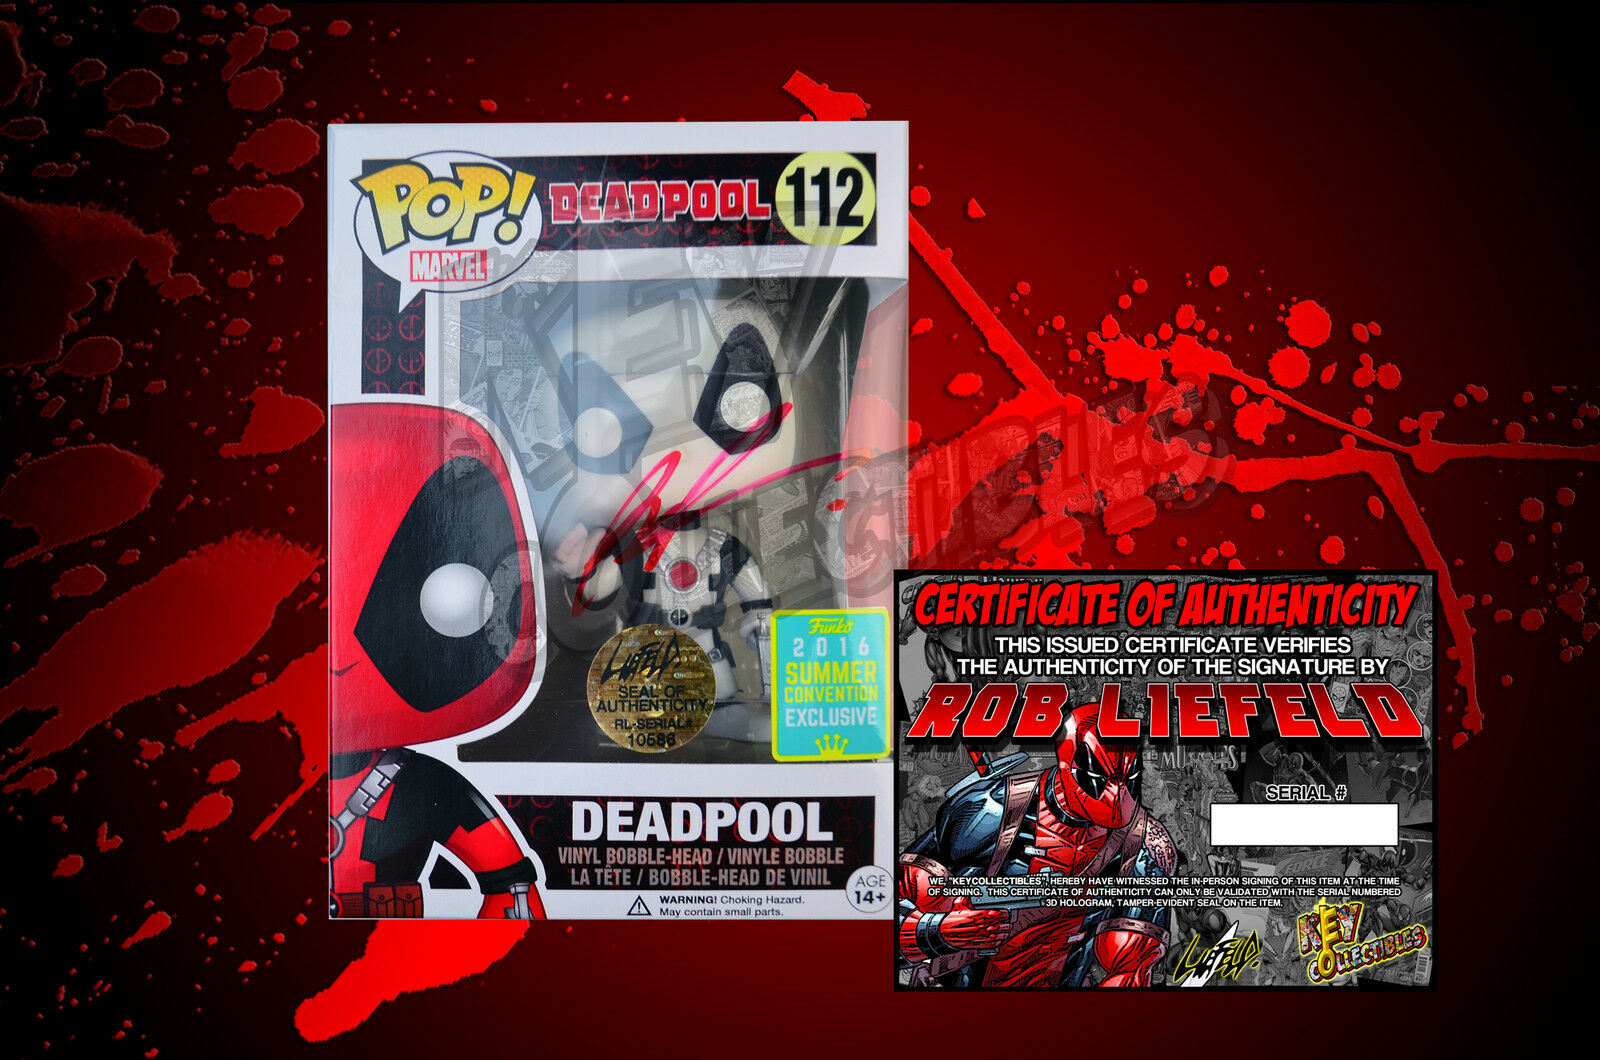 2016 Summer Convention Exclusive Deadpool 112 Funko POP  Figure - SIGNED BY ROB